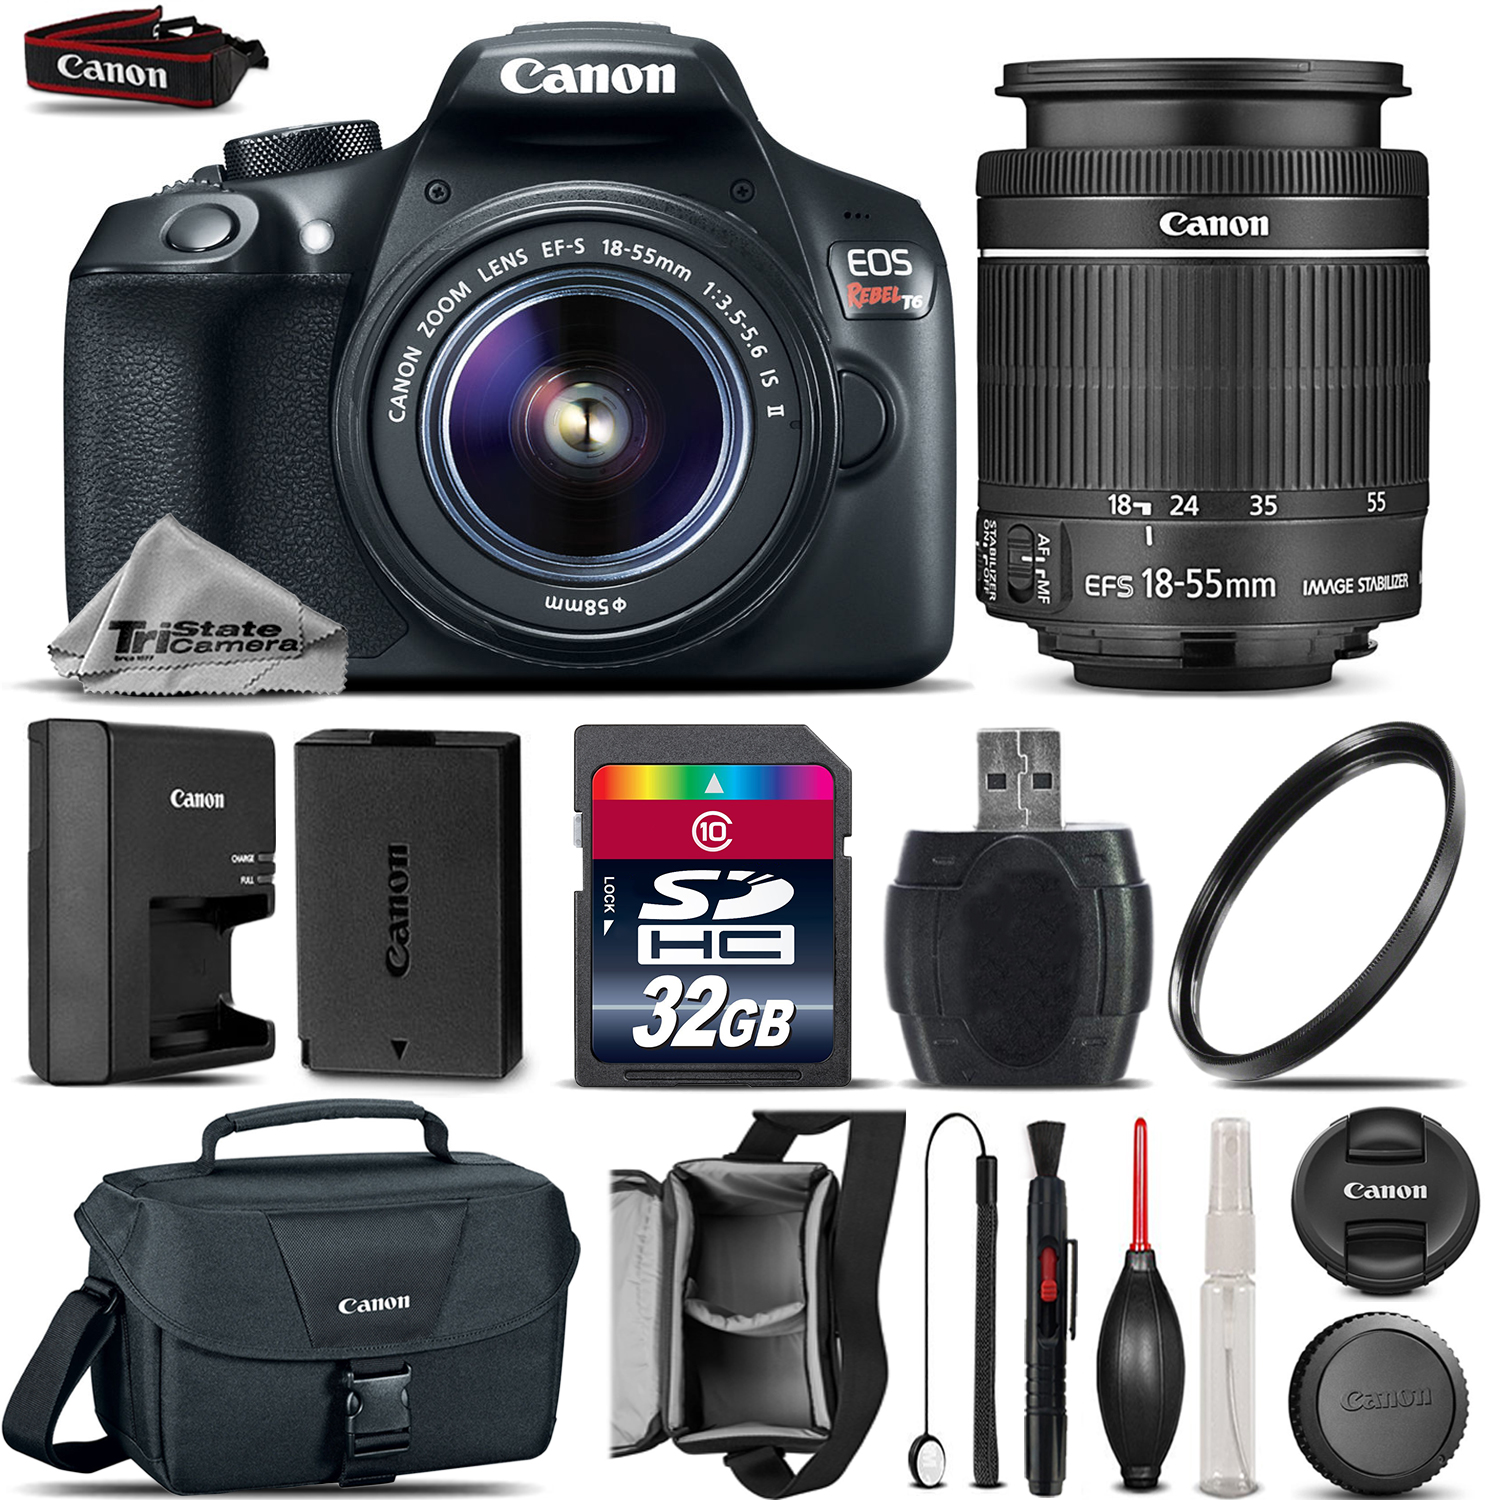 EOS Rebel T6 1300D Camera + 18-55mm IS Lens + Canon Case + UV - 32GB Kit *FREE SHIPPING*